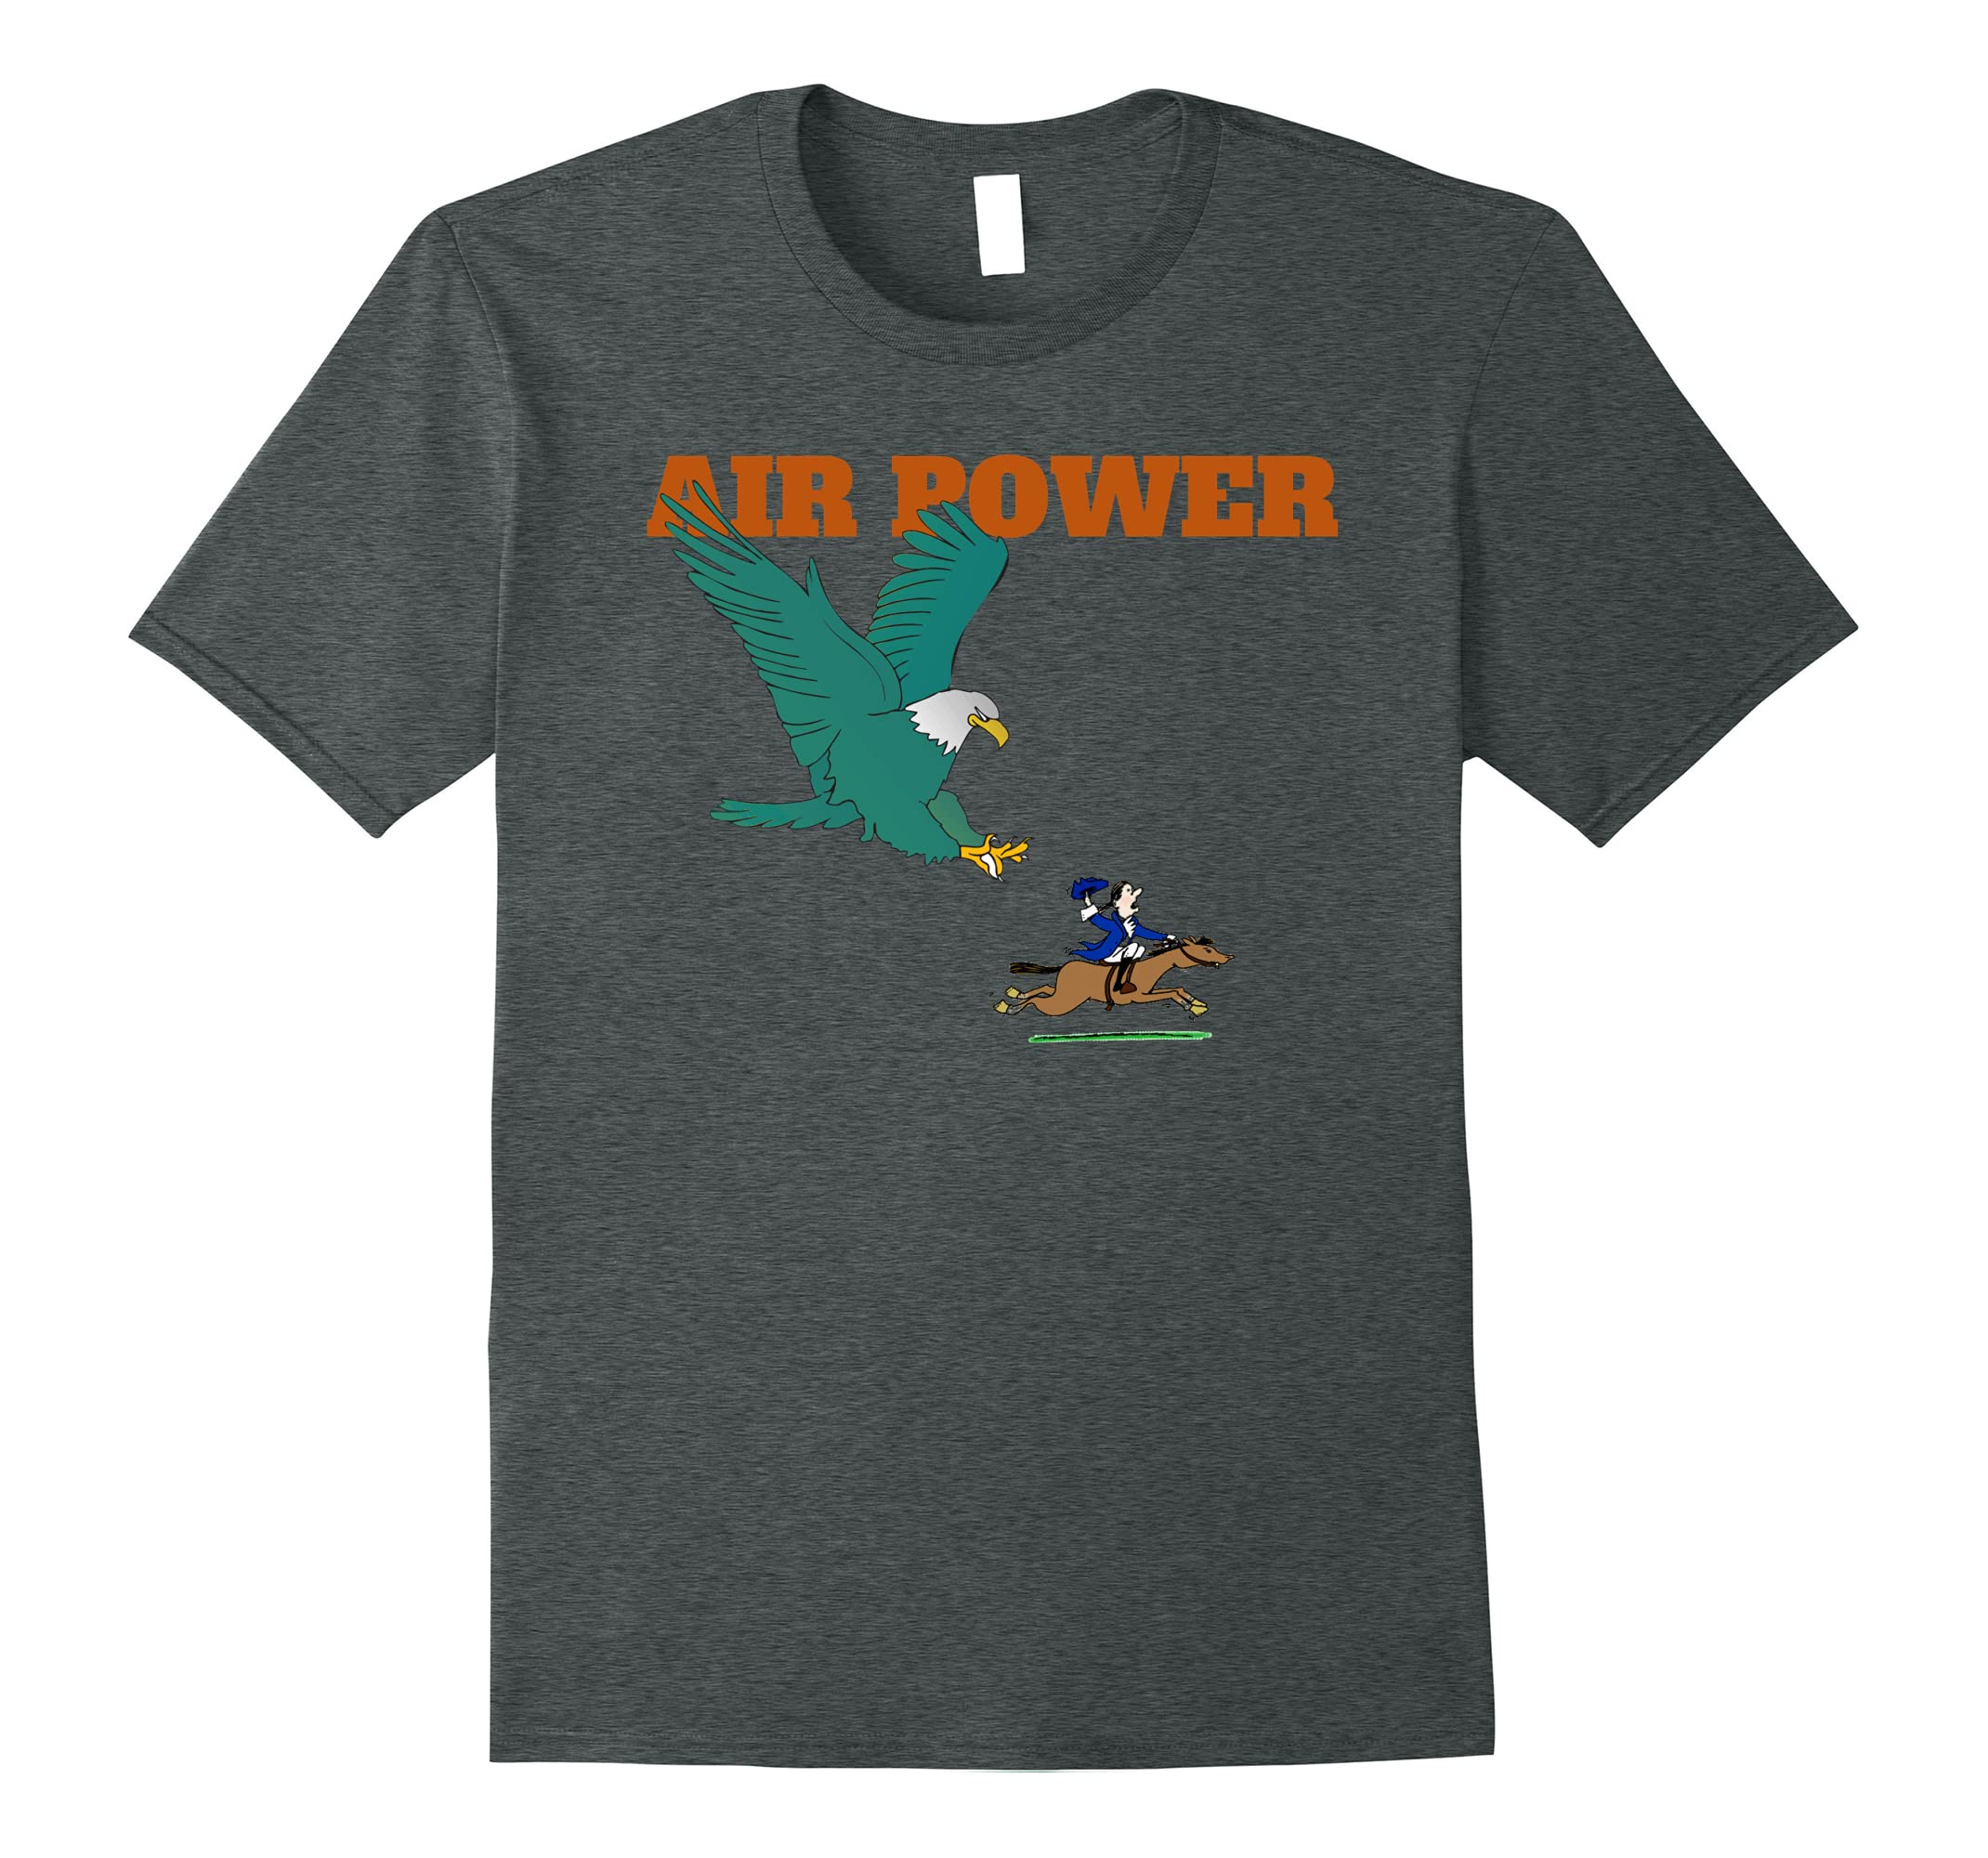 Eagles Air Power T Shirt.-ah my shirt one gift